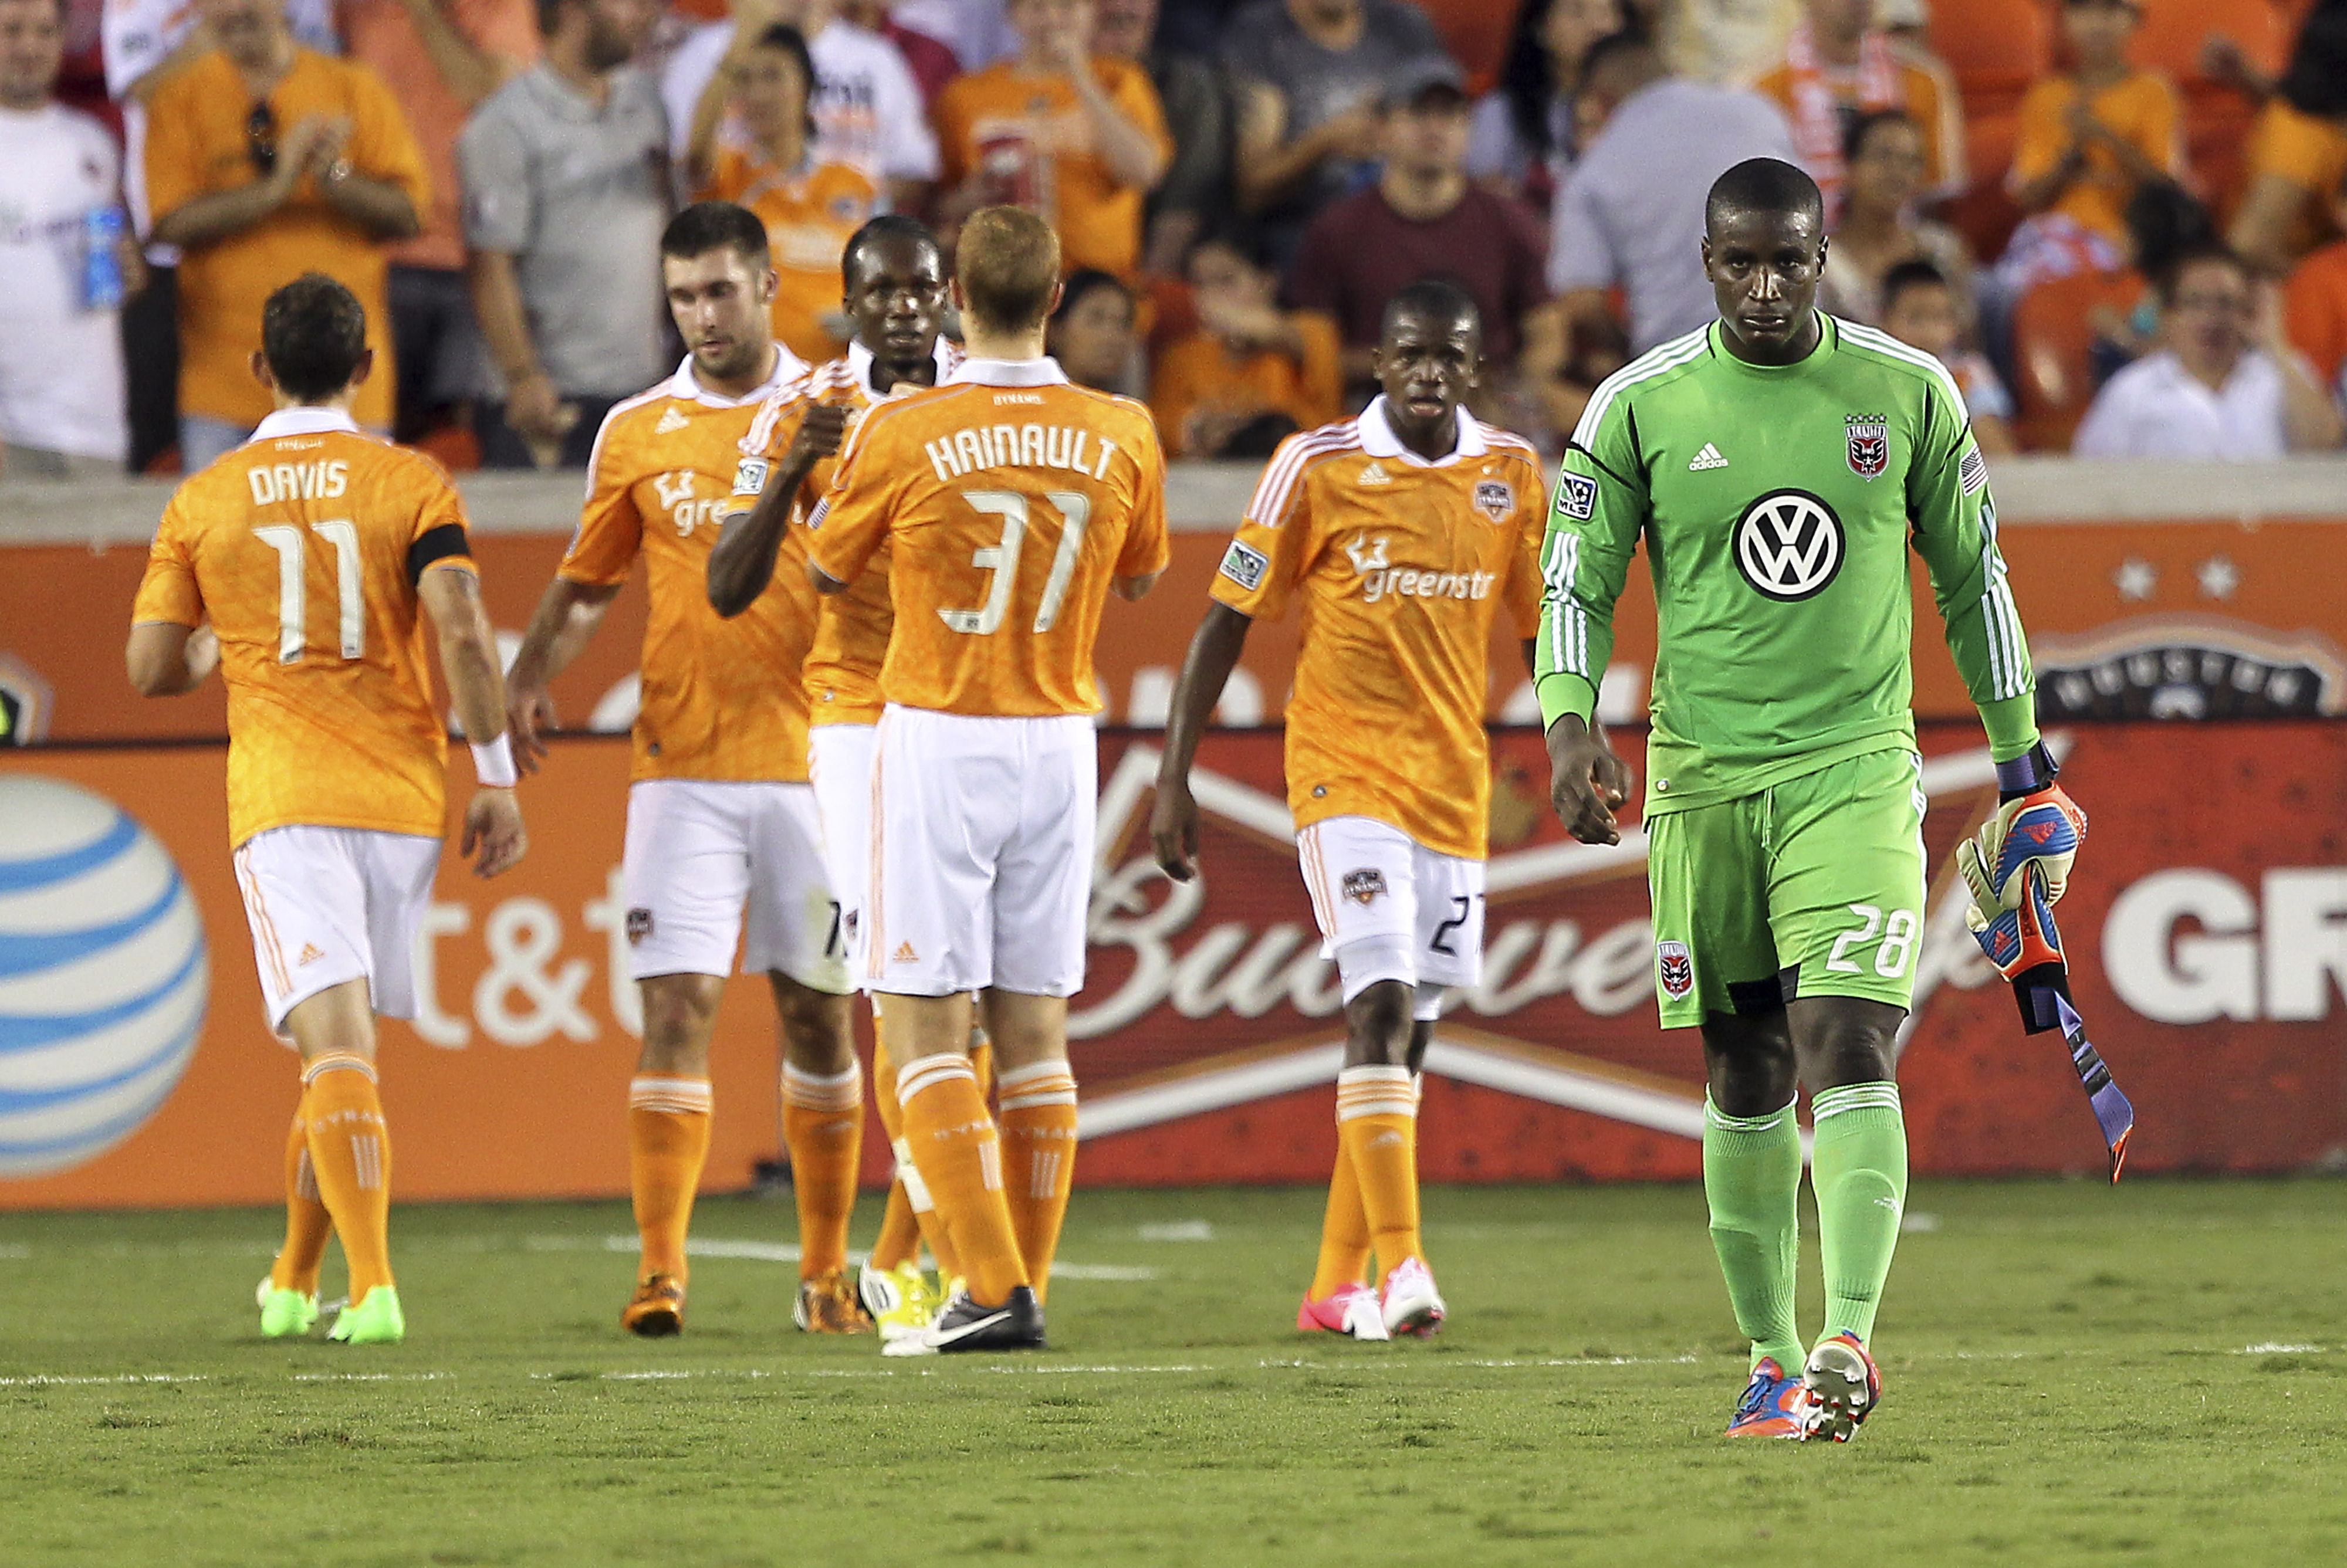 Unfortunately we didn't get to see these two playoff-bound teams play 11 vs. 11, because a recurring problem for Bill Hamid recurred again.